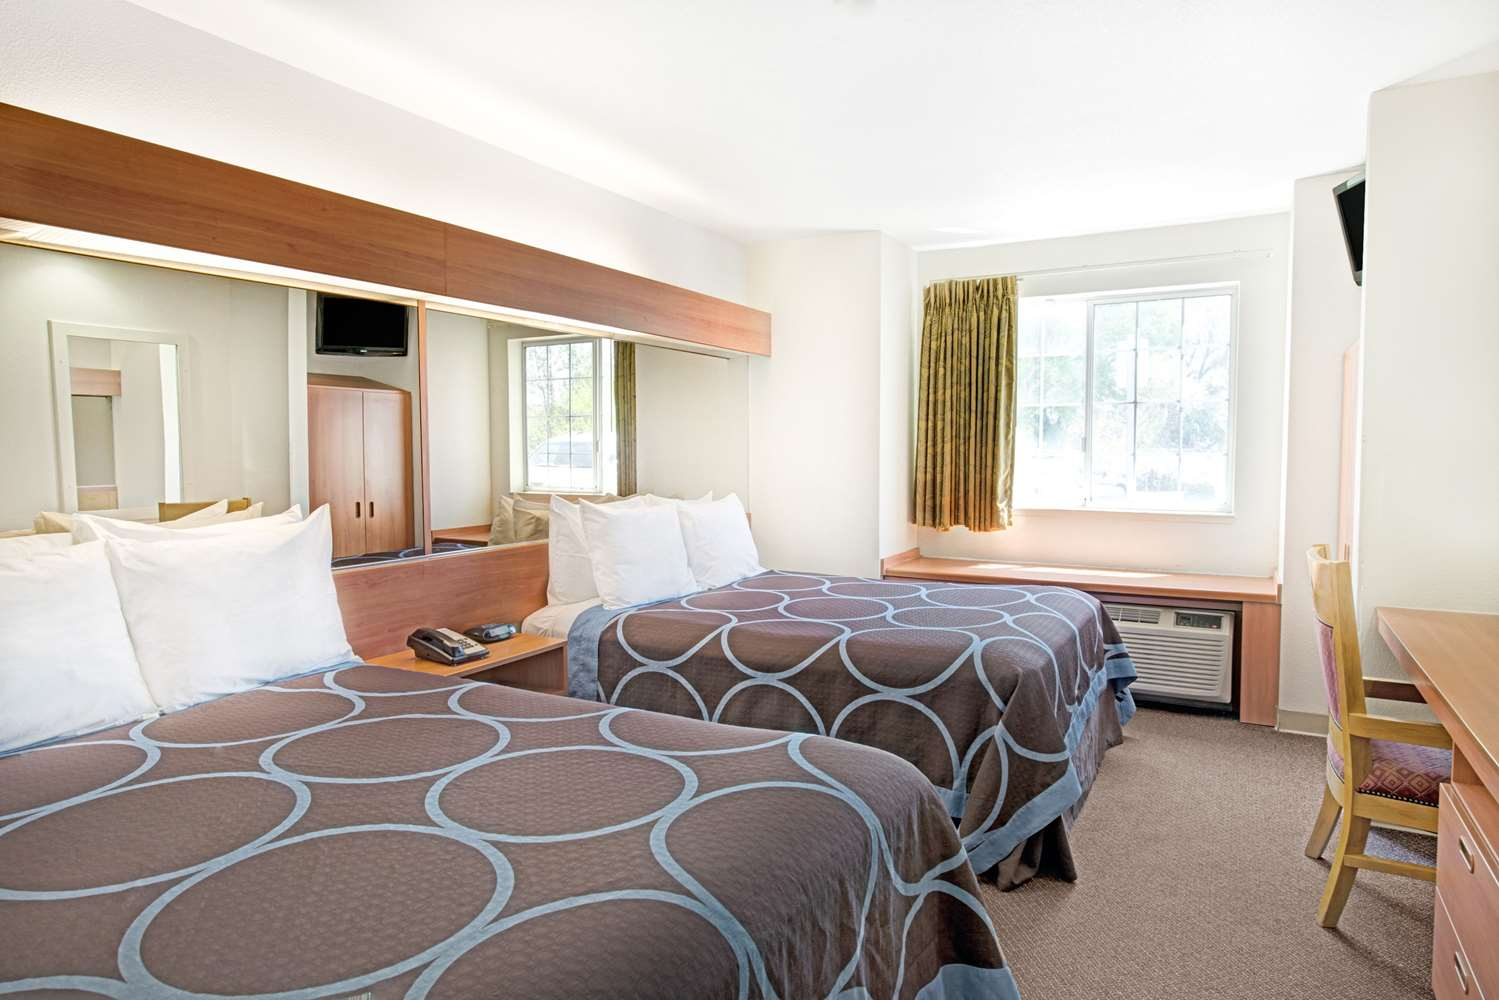 super 8 hotel smf airport sacramento ca see discounts. Black Bedroom Furniture Sets. Home Design Ideas